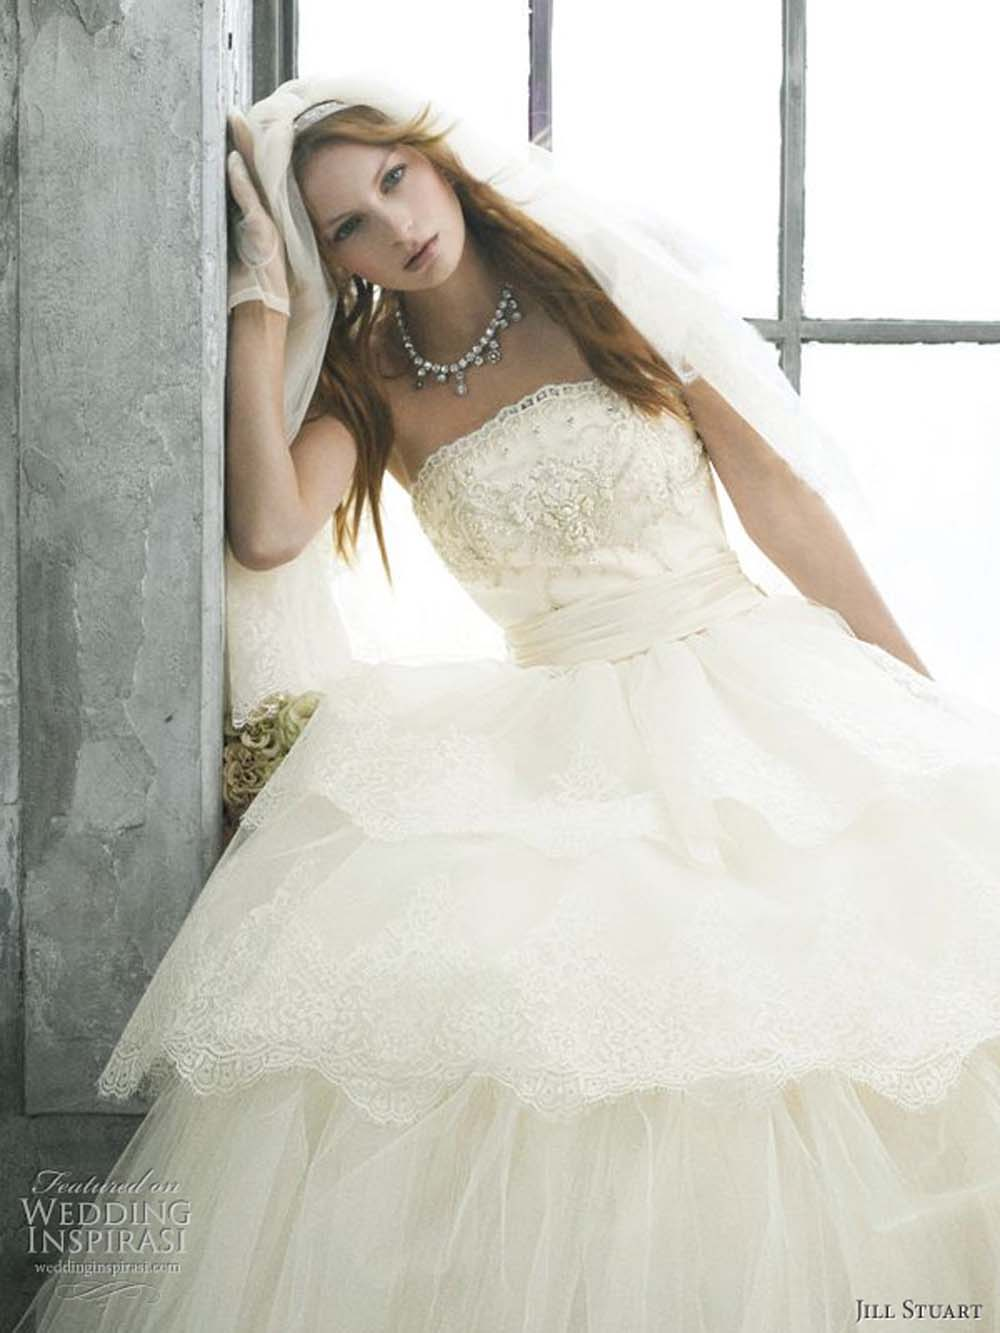 Pictures Of Shabby Chic Wedding Dresses : Shabby chic wedding dress